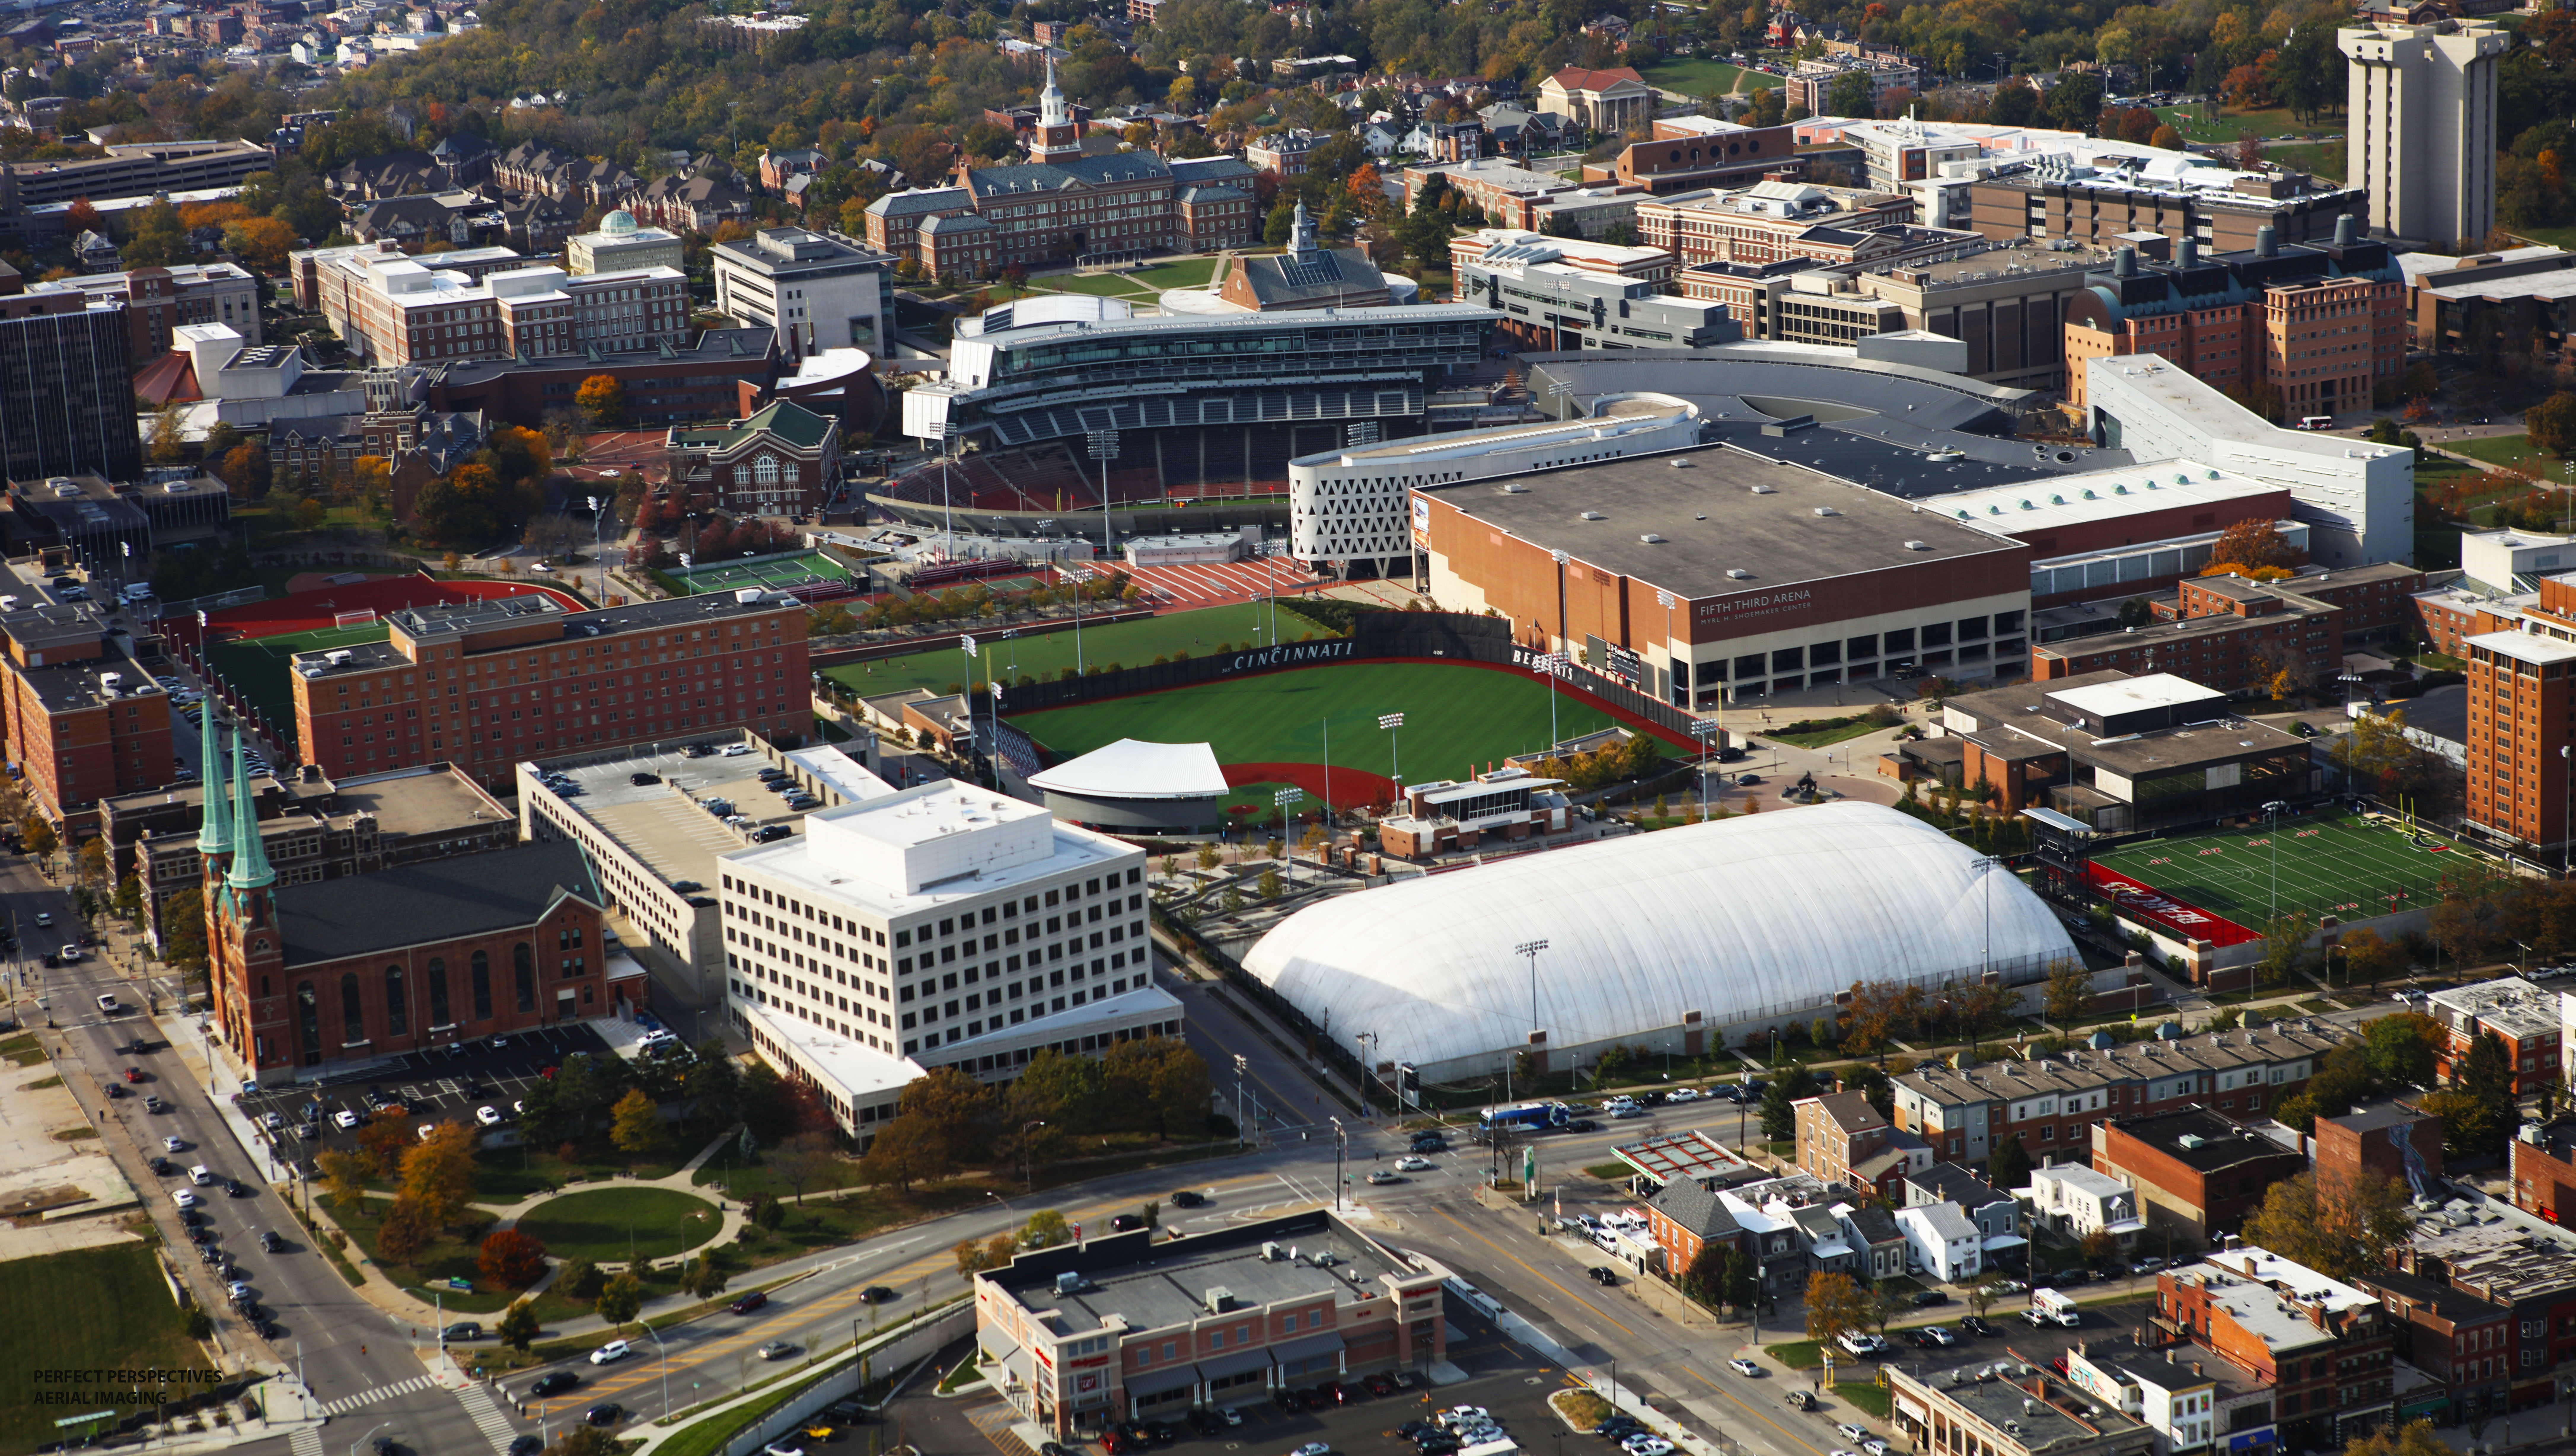 University of Cincinnati Aerial Photo